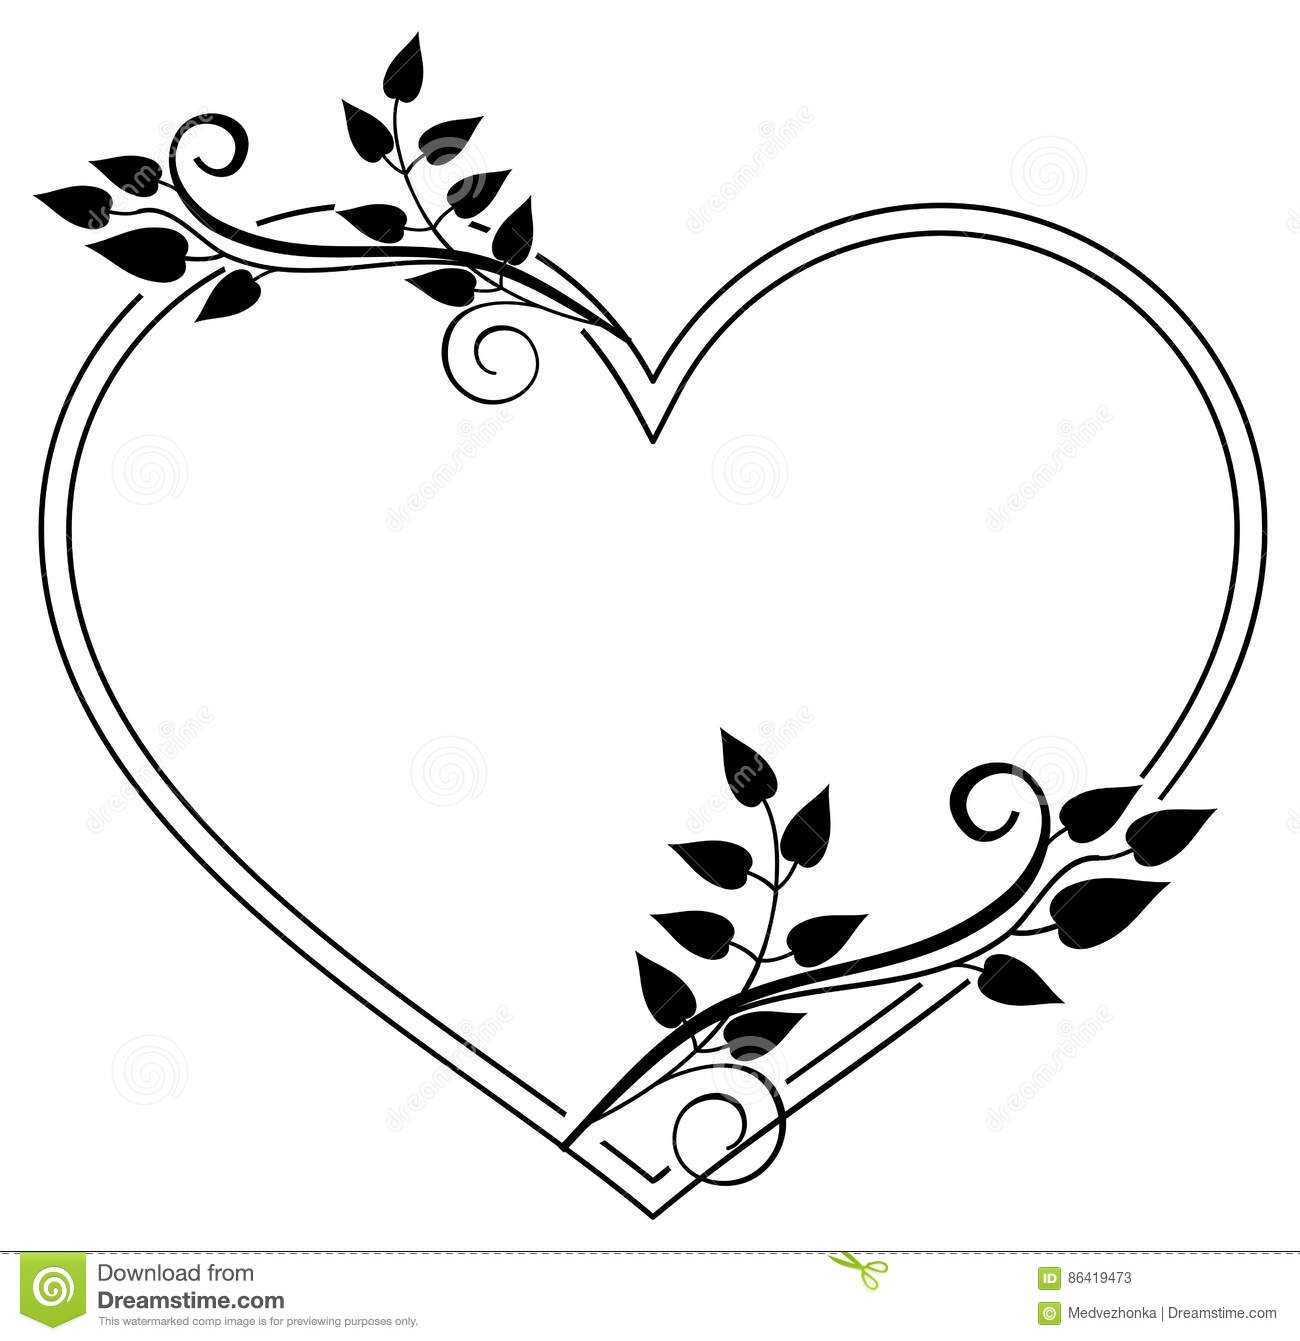 Black Flower Heart Shape Illustration Tattoo On White: Heart-shaped Black And White Frame With Floral Silhouettes